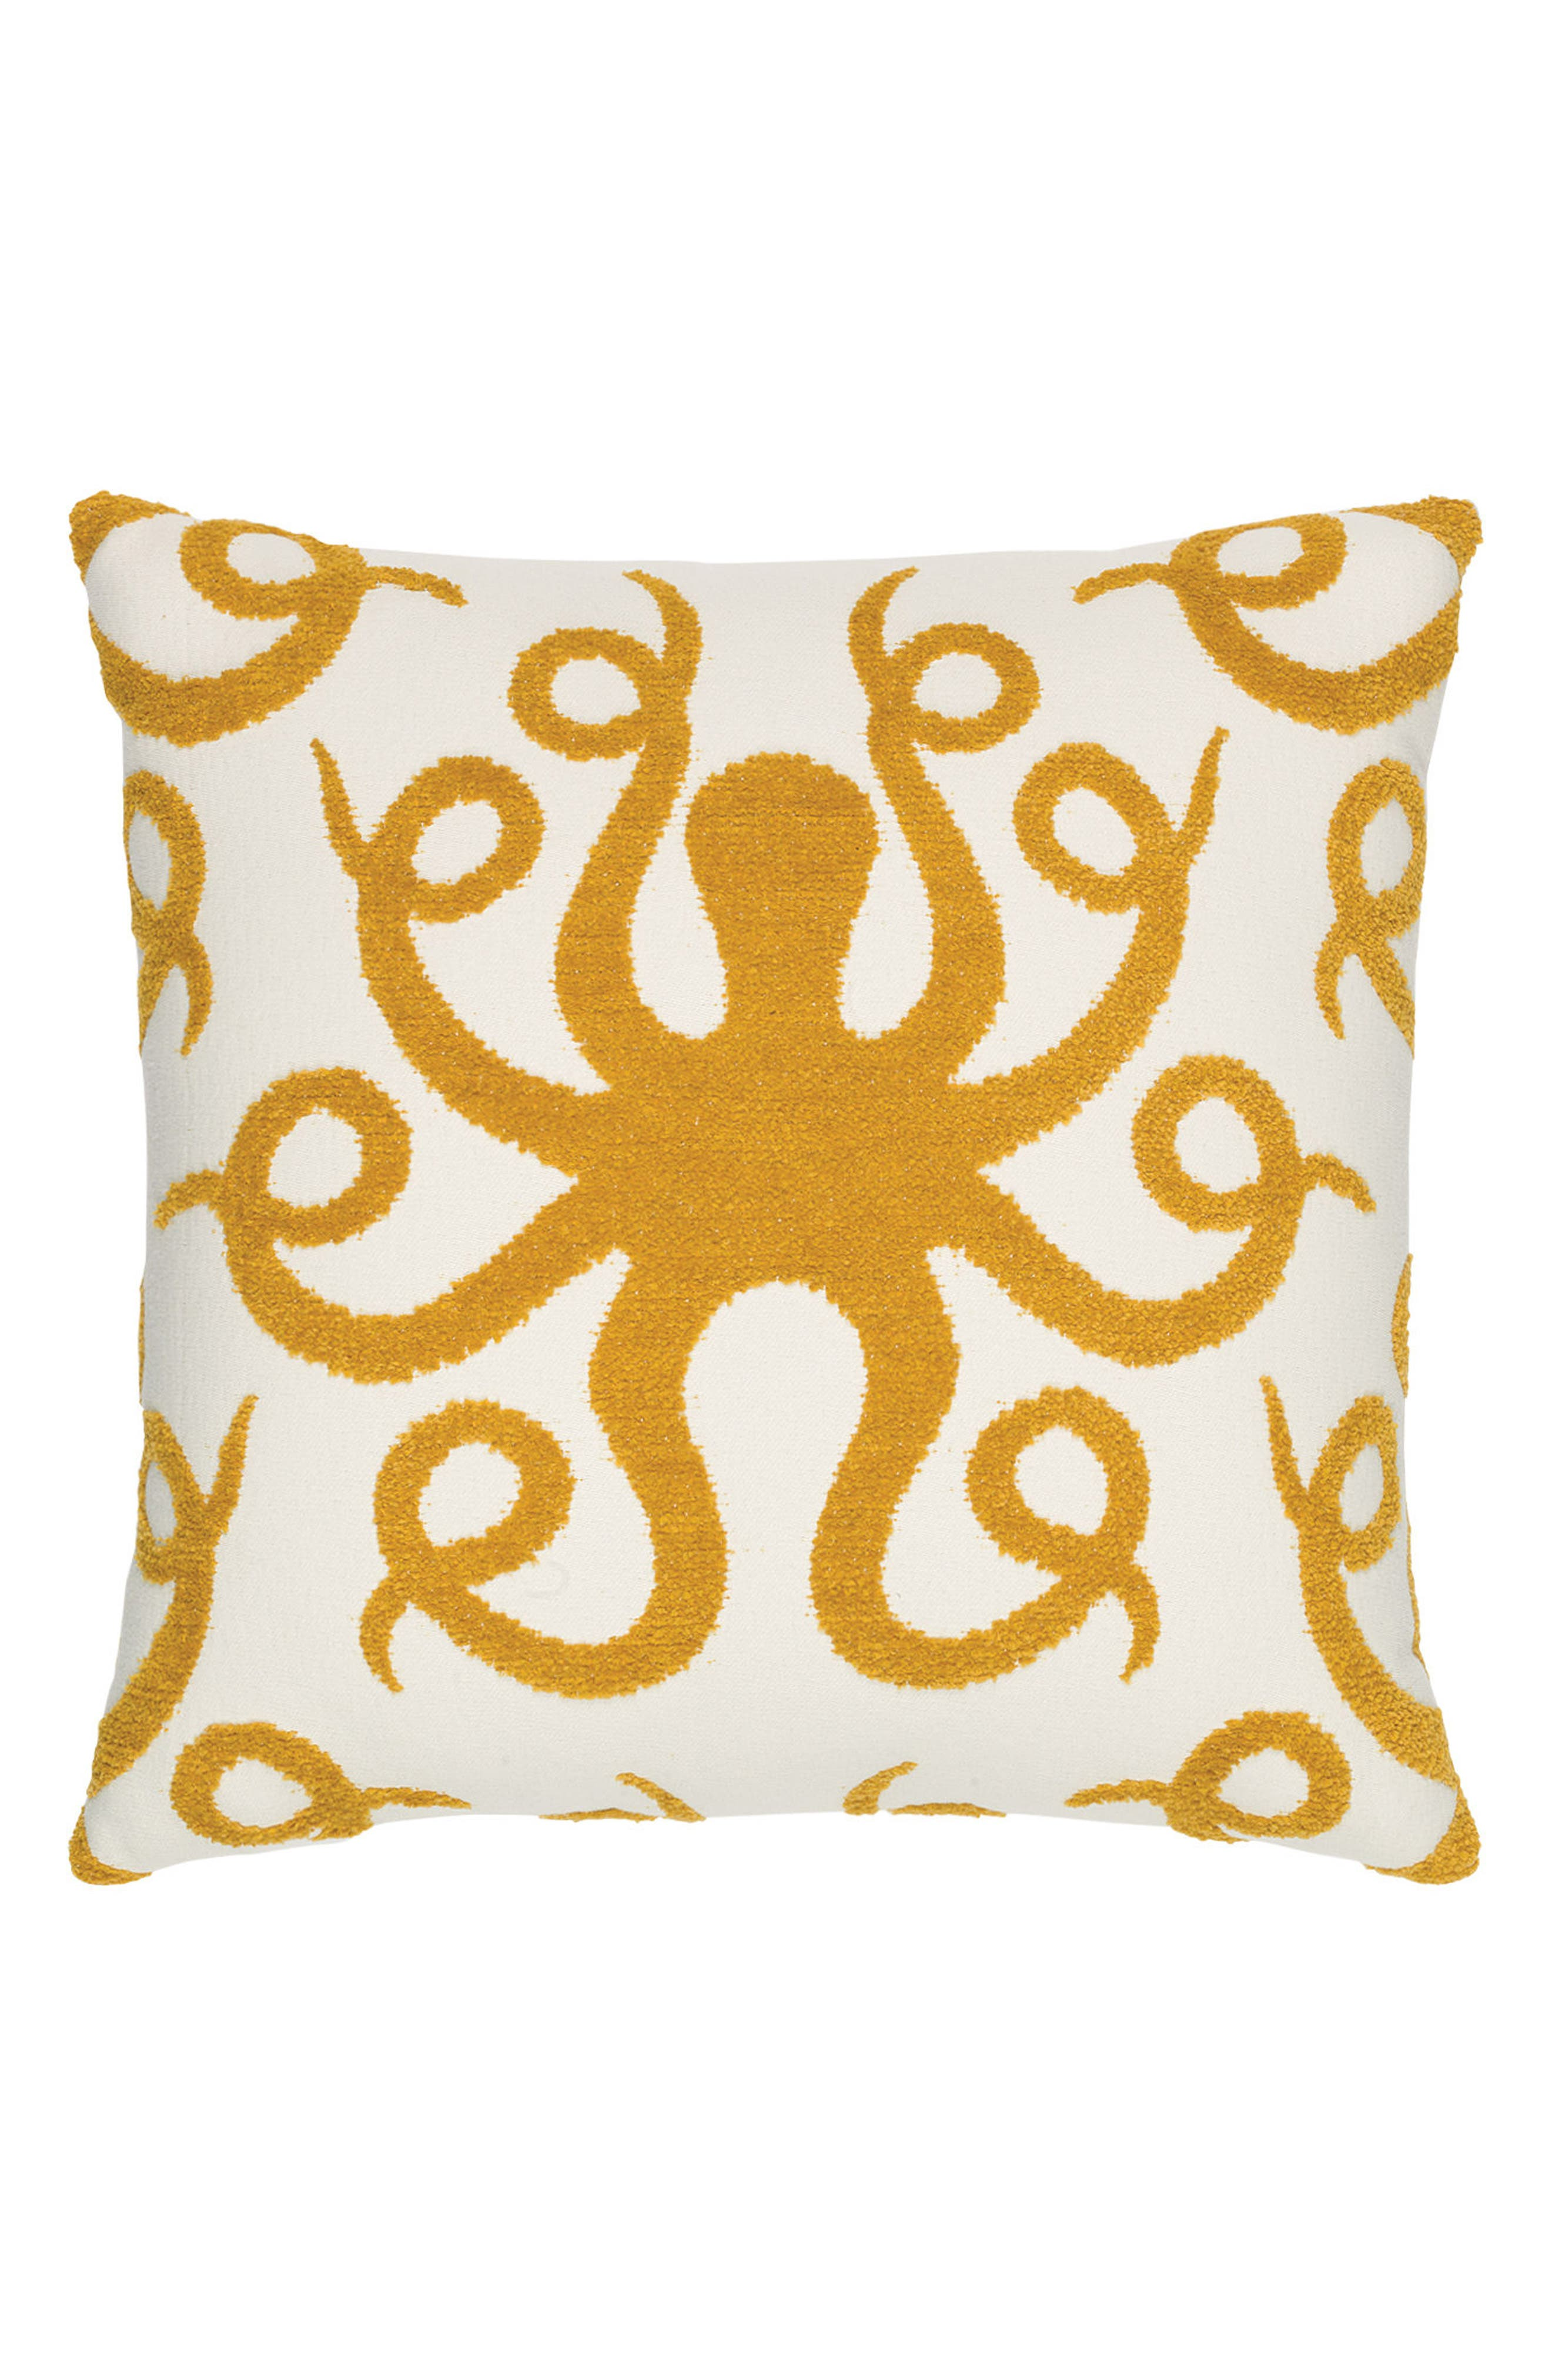 Alternate Image 1 Selected - Elaine Smith Octoplush Indoor/Outdoor Accent Pillow